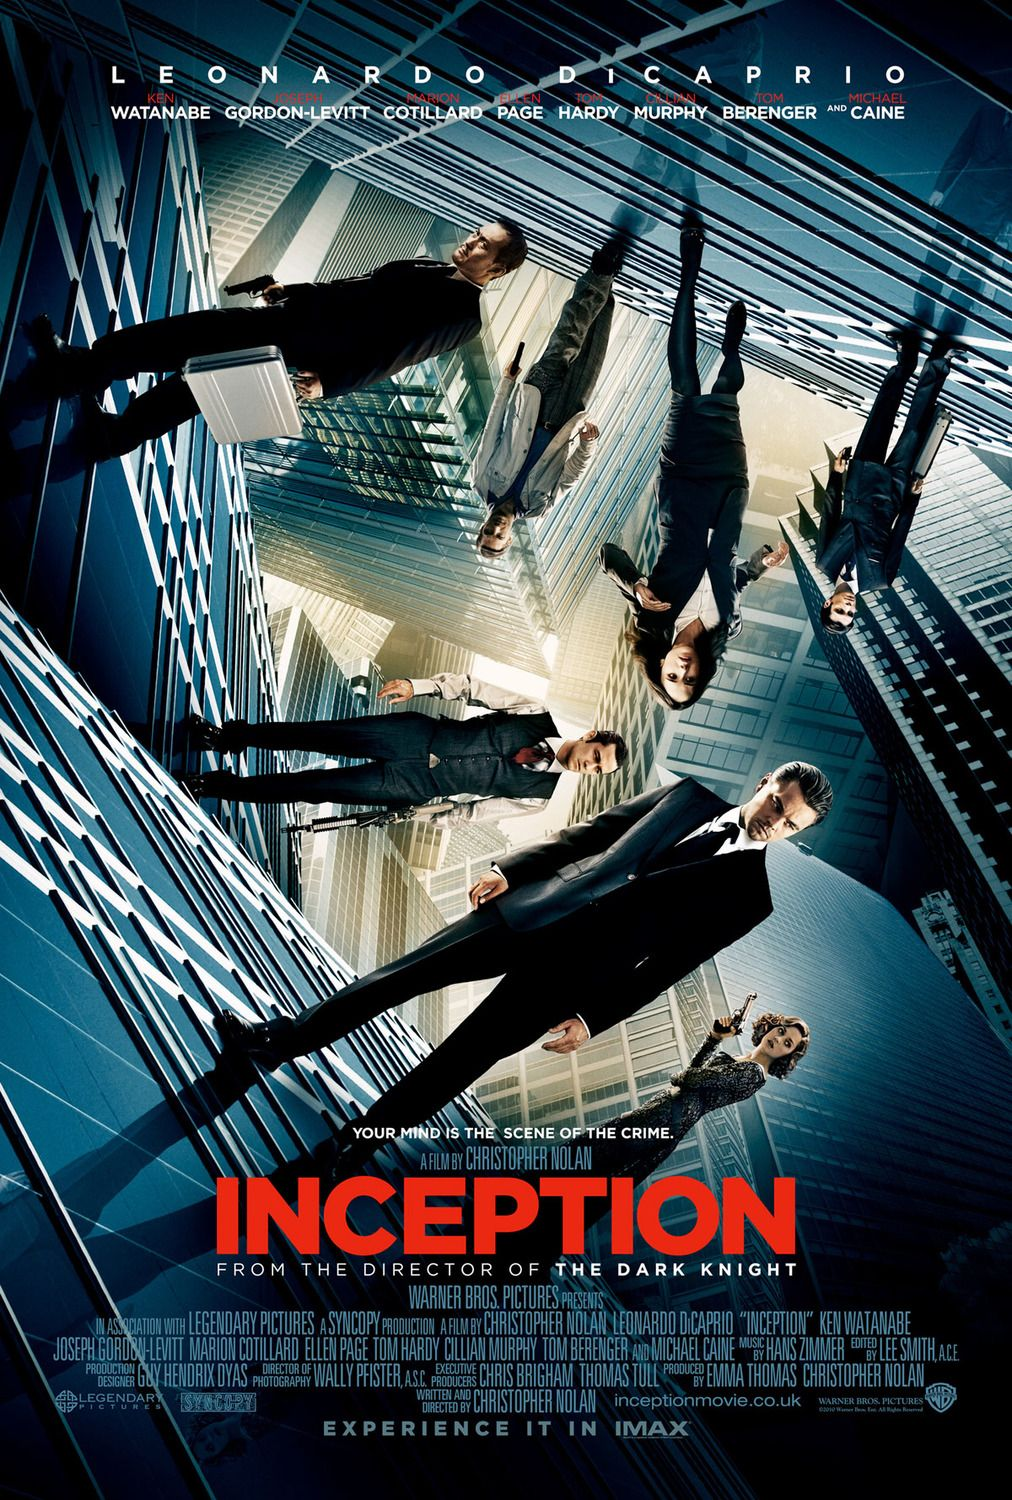 Abraham Lincoln Caçador De Vampiros Online Dublado Completo return to the main poster page for inception (#4 of 15